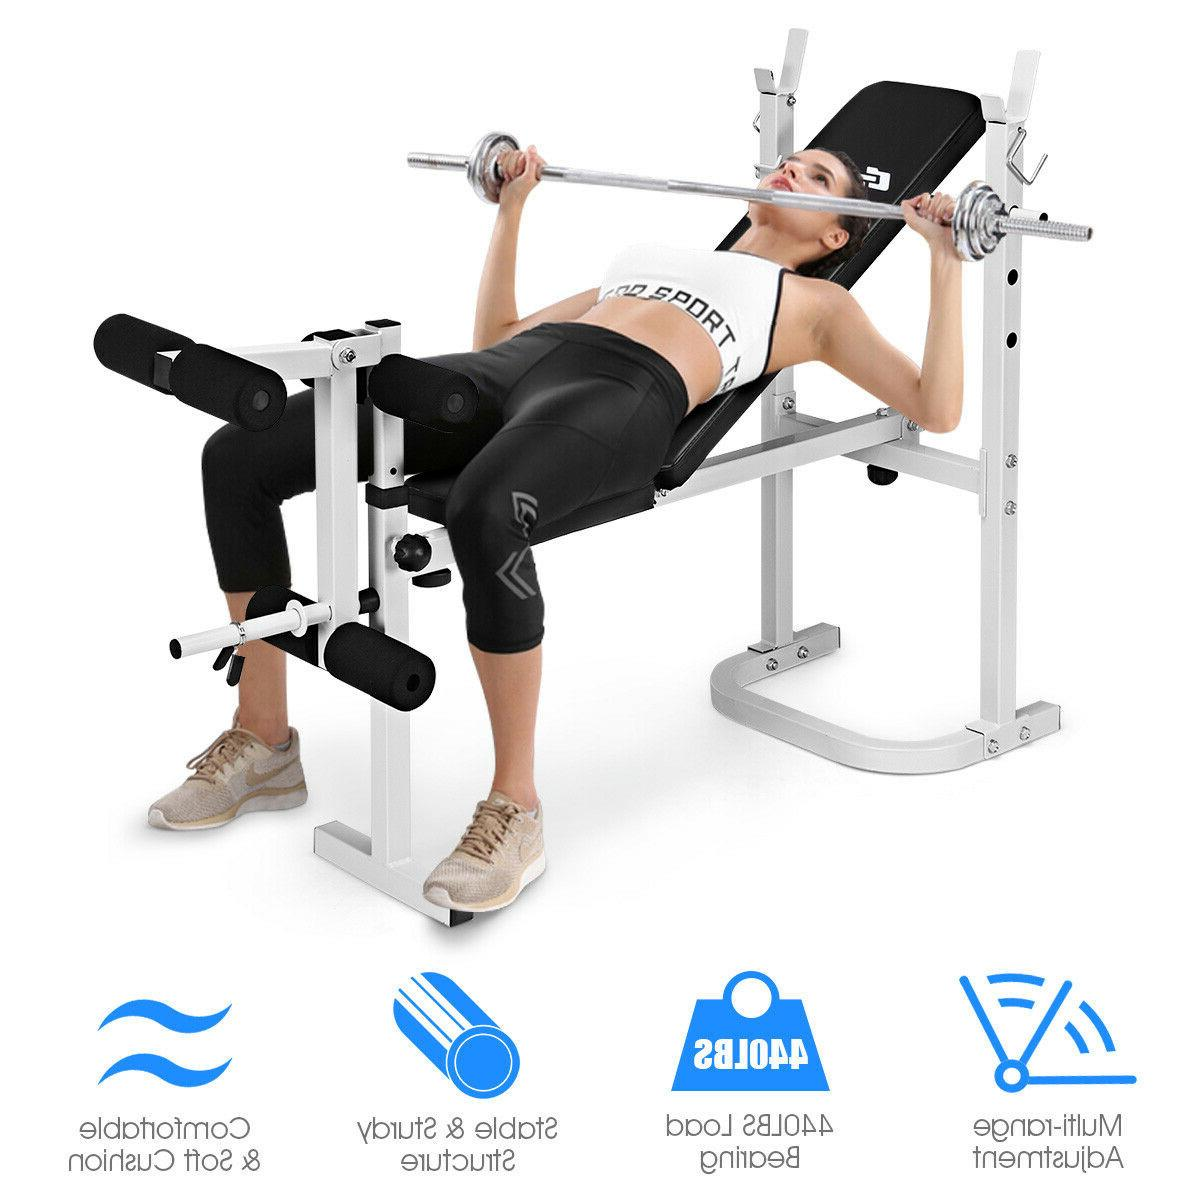 HIGH Steel Olympic Folding Weight Bench With 3